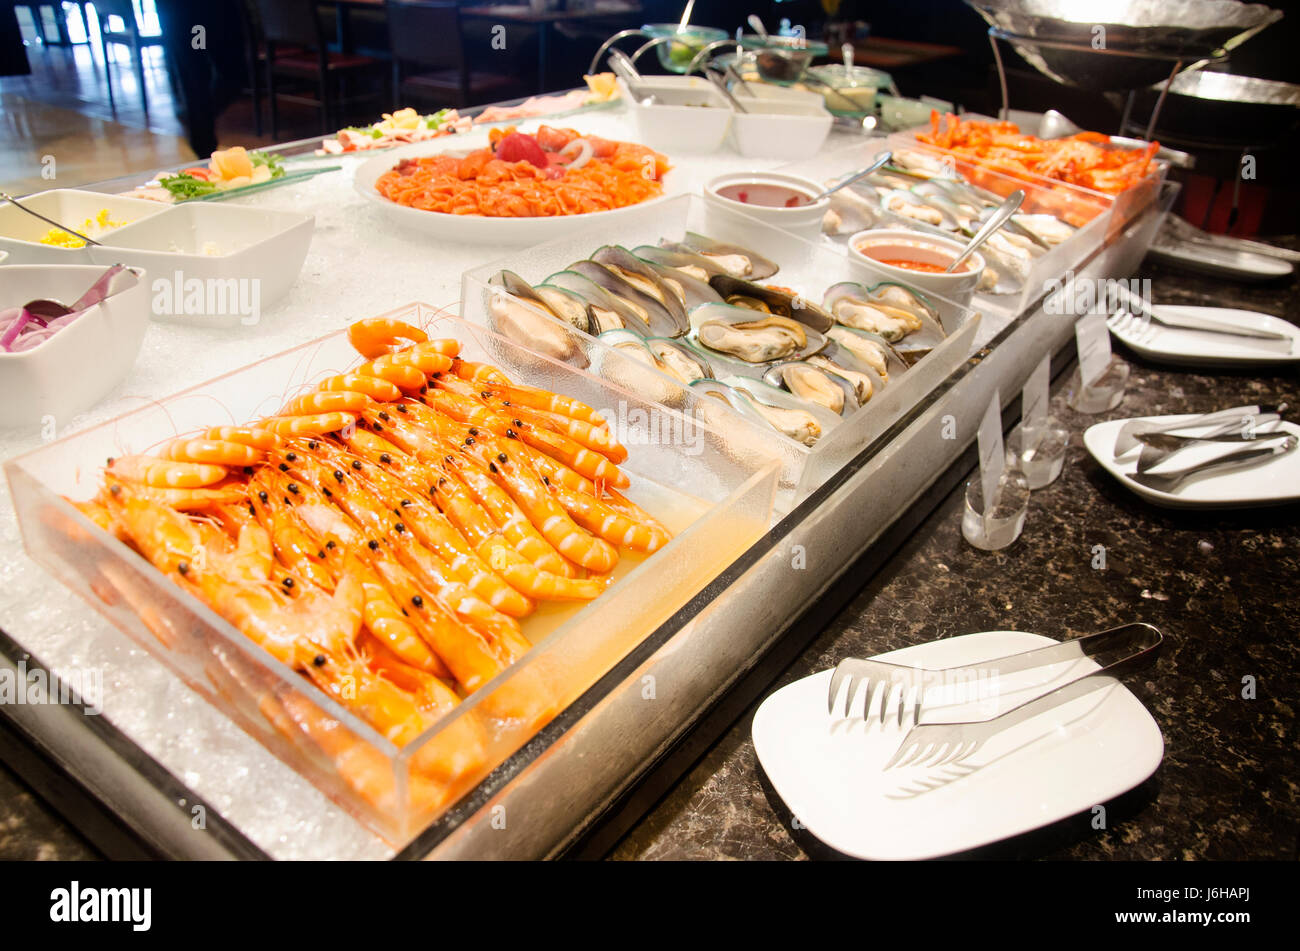 Magnificent Cuisine Seafood Line At Food Buffet Service For People Serve Download Free Architecture Designs Grimeyleaguecom